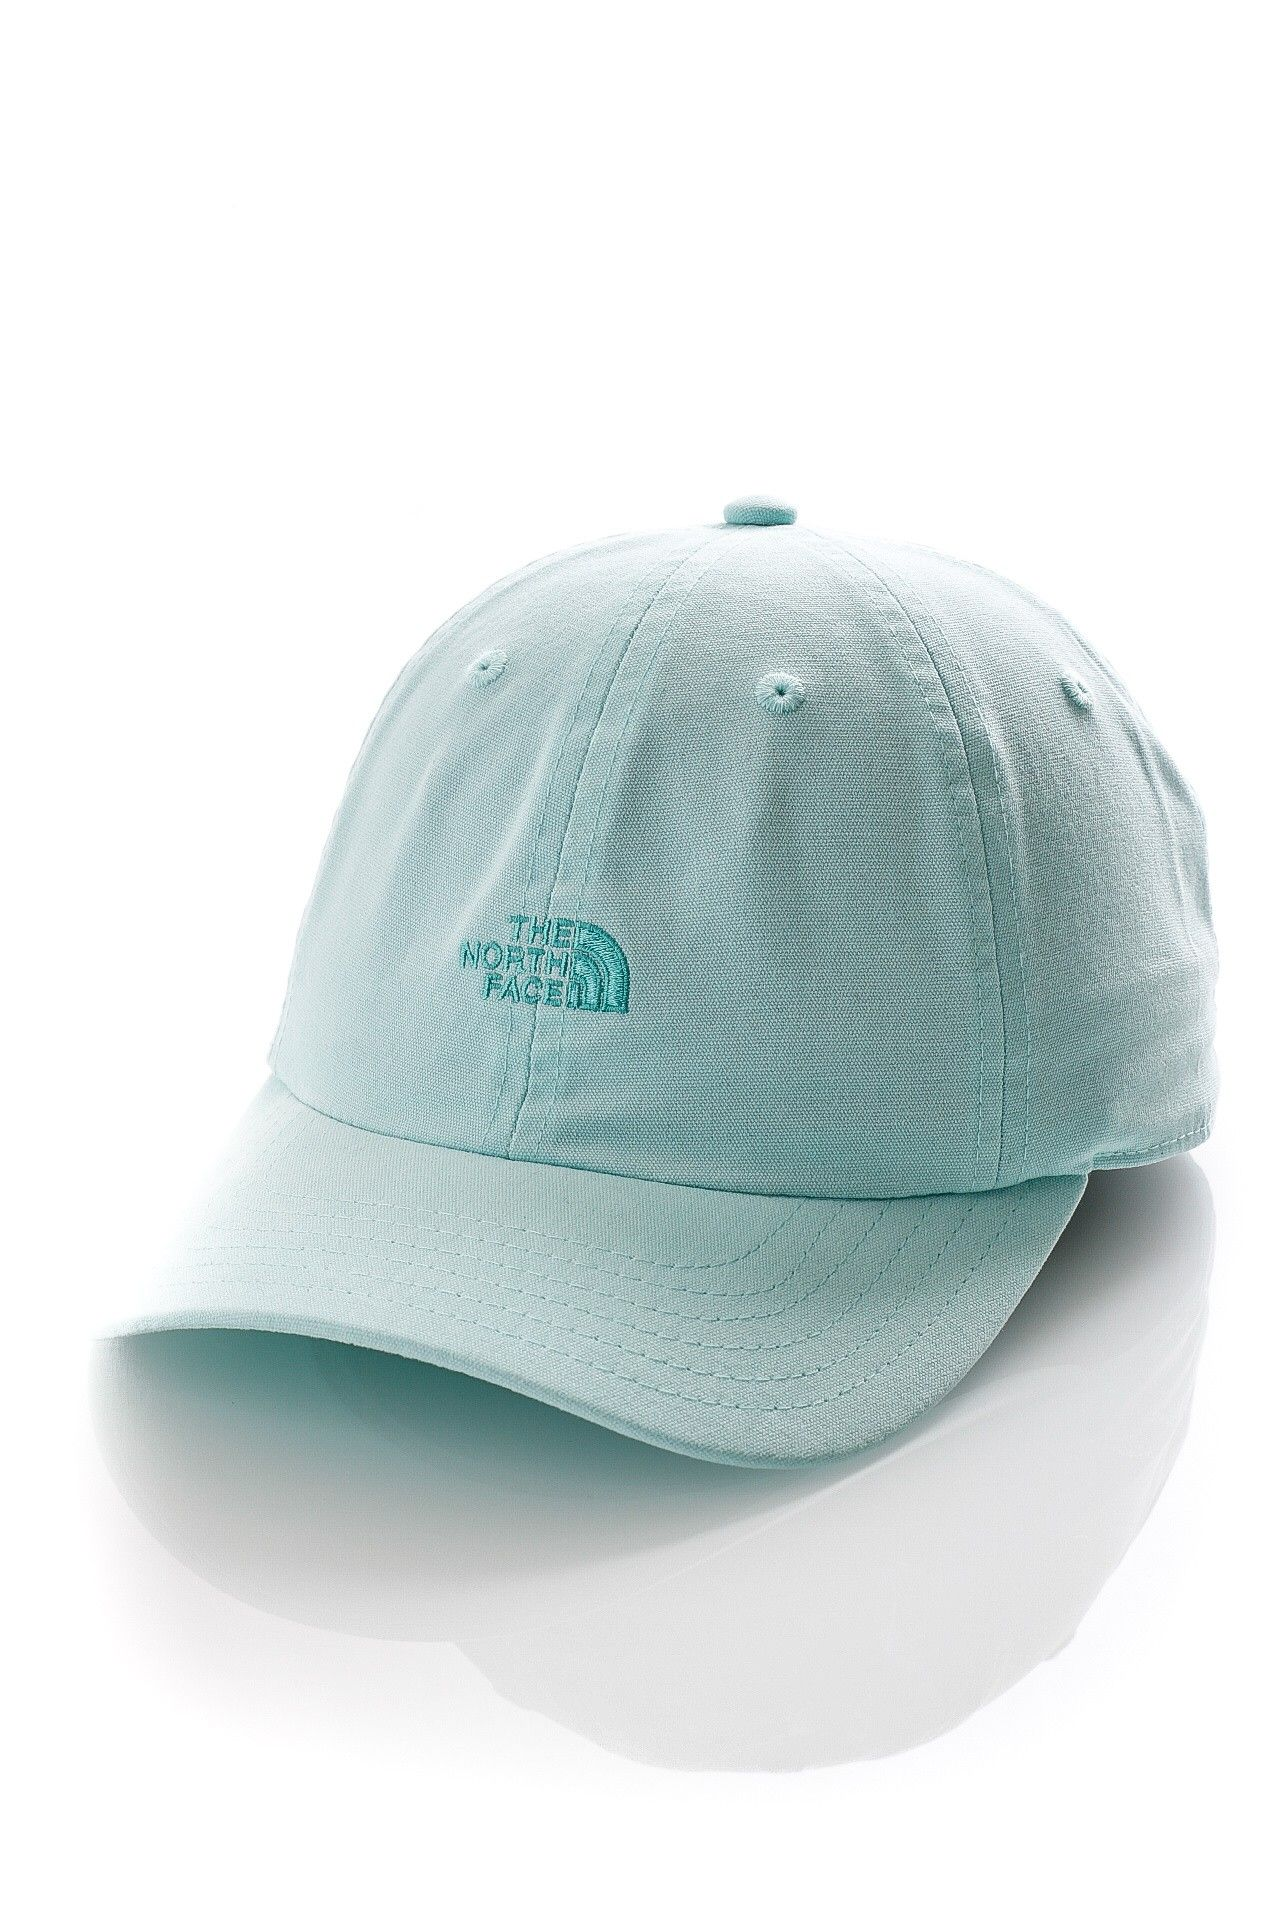 Afbeelding van The North Face Dad Cap Washed Norm Hat Coastal Green Wash NF0A3FKNNLG